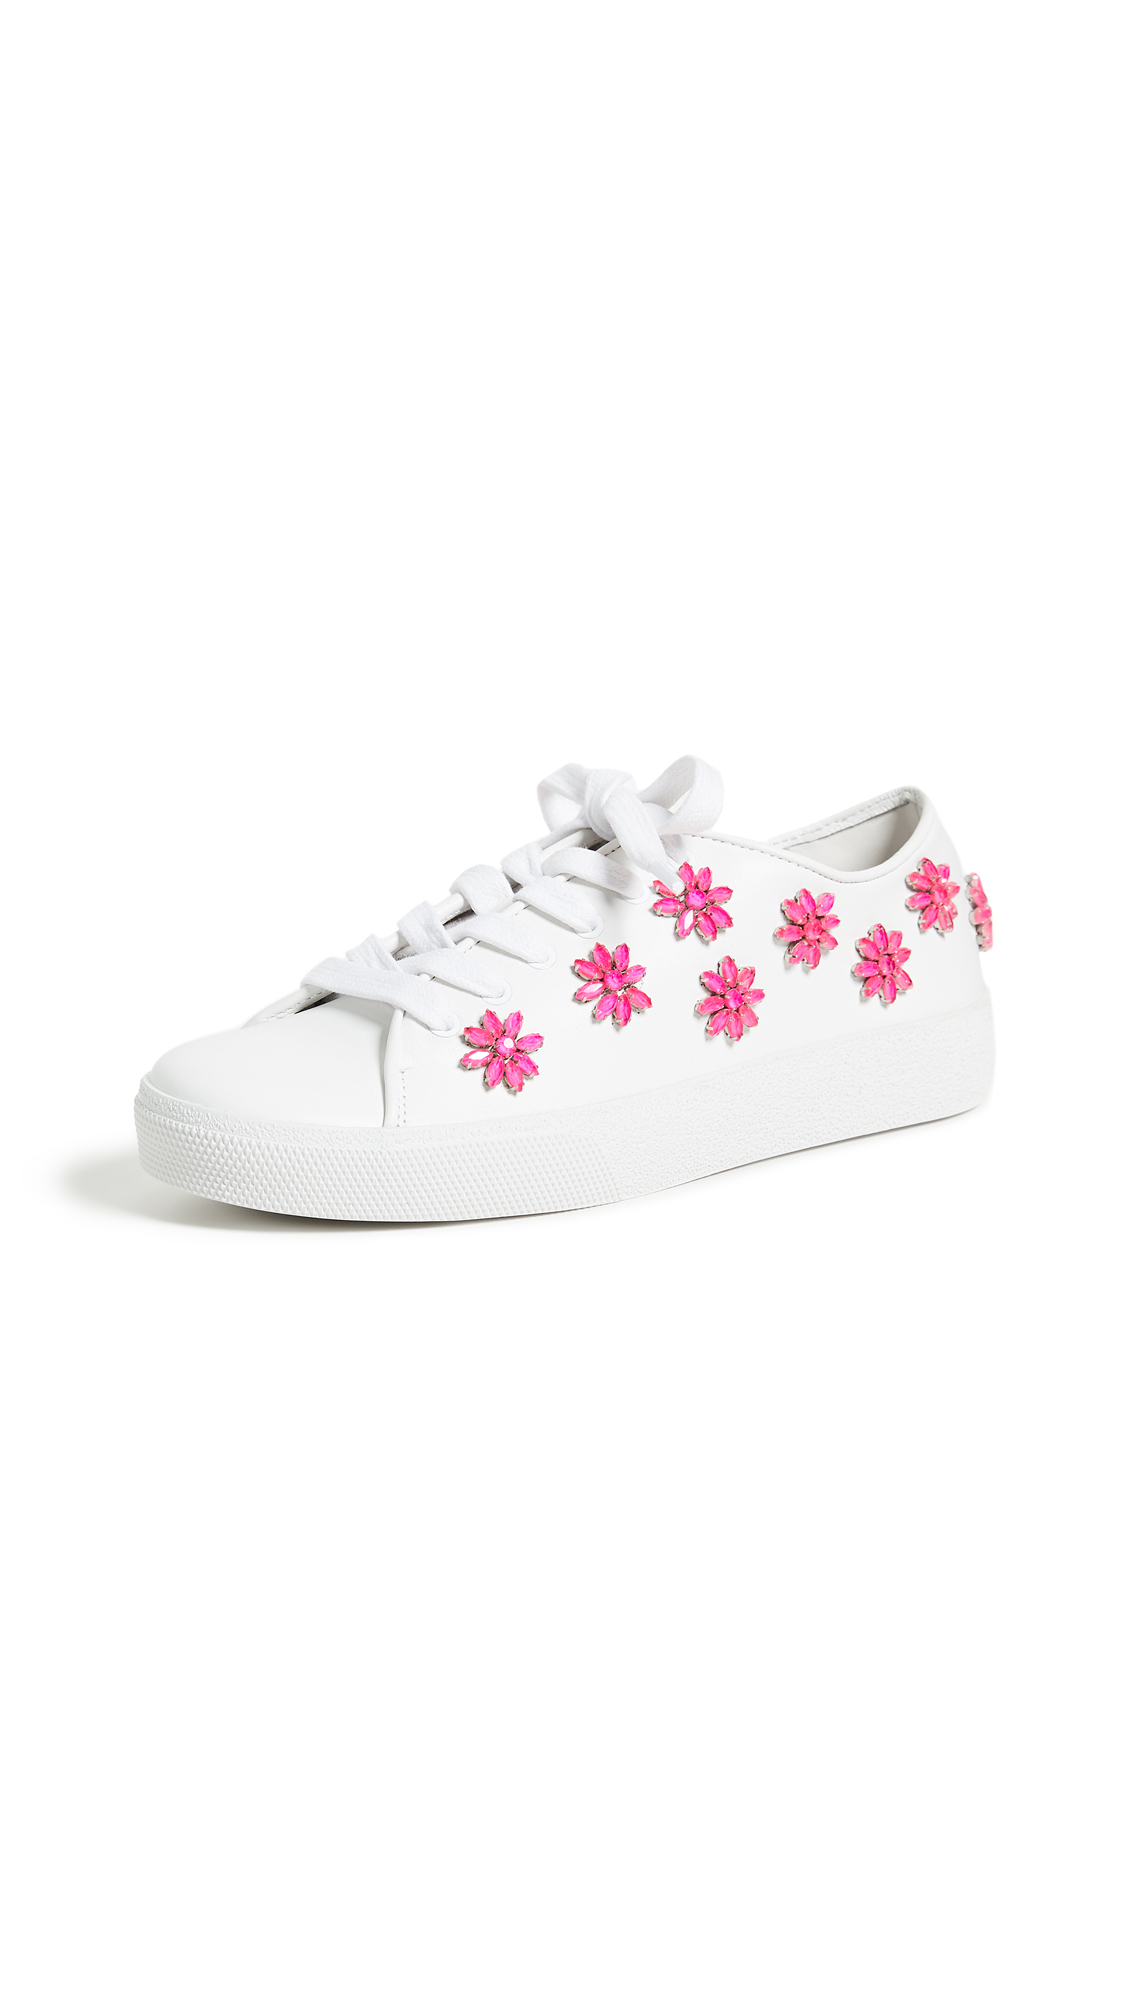 alice + olivia Cleo Floral Sneakers - Pure White